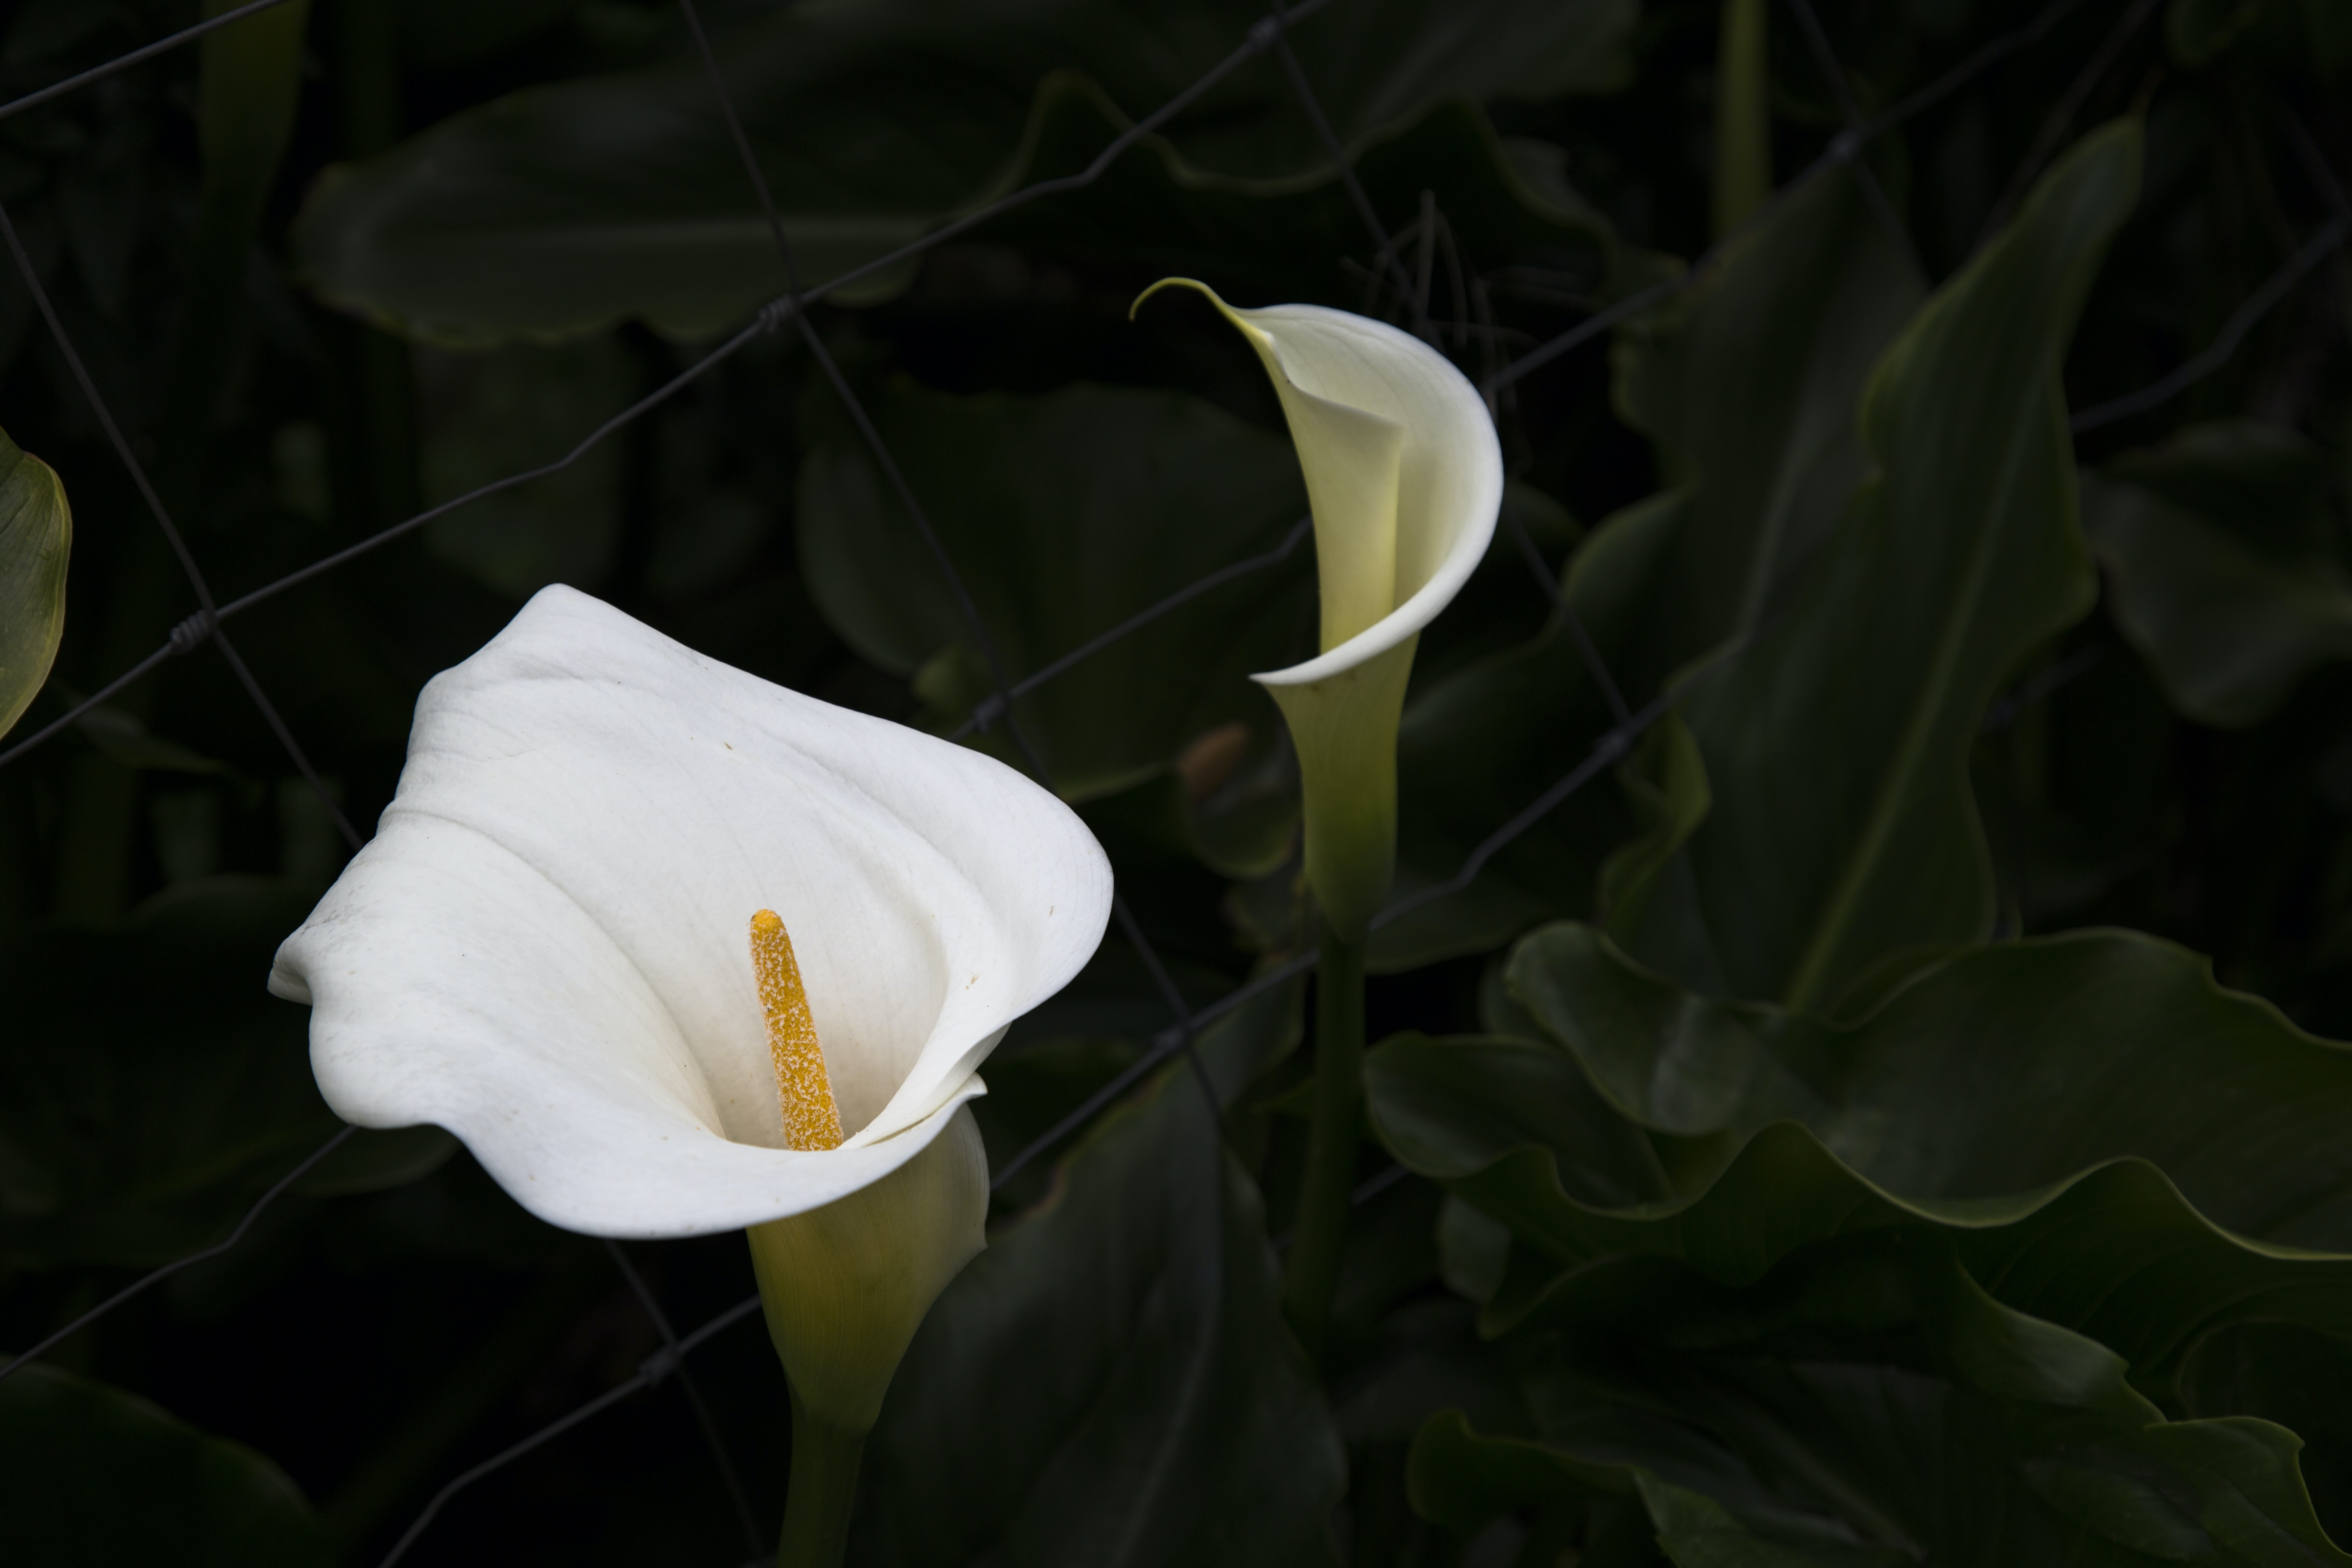 plant with white bell flowers